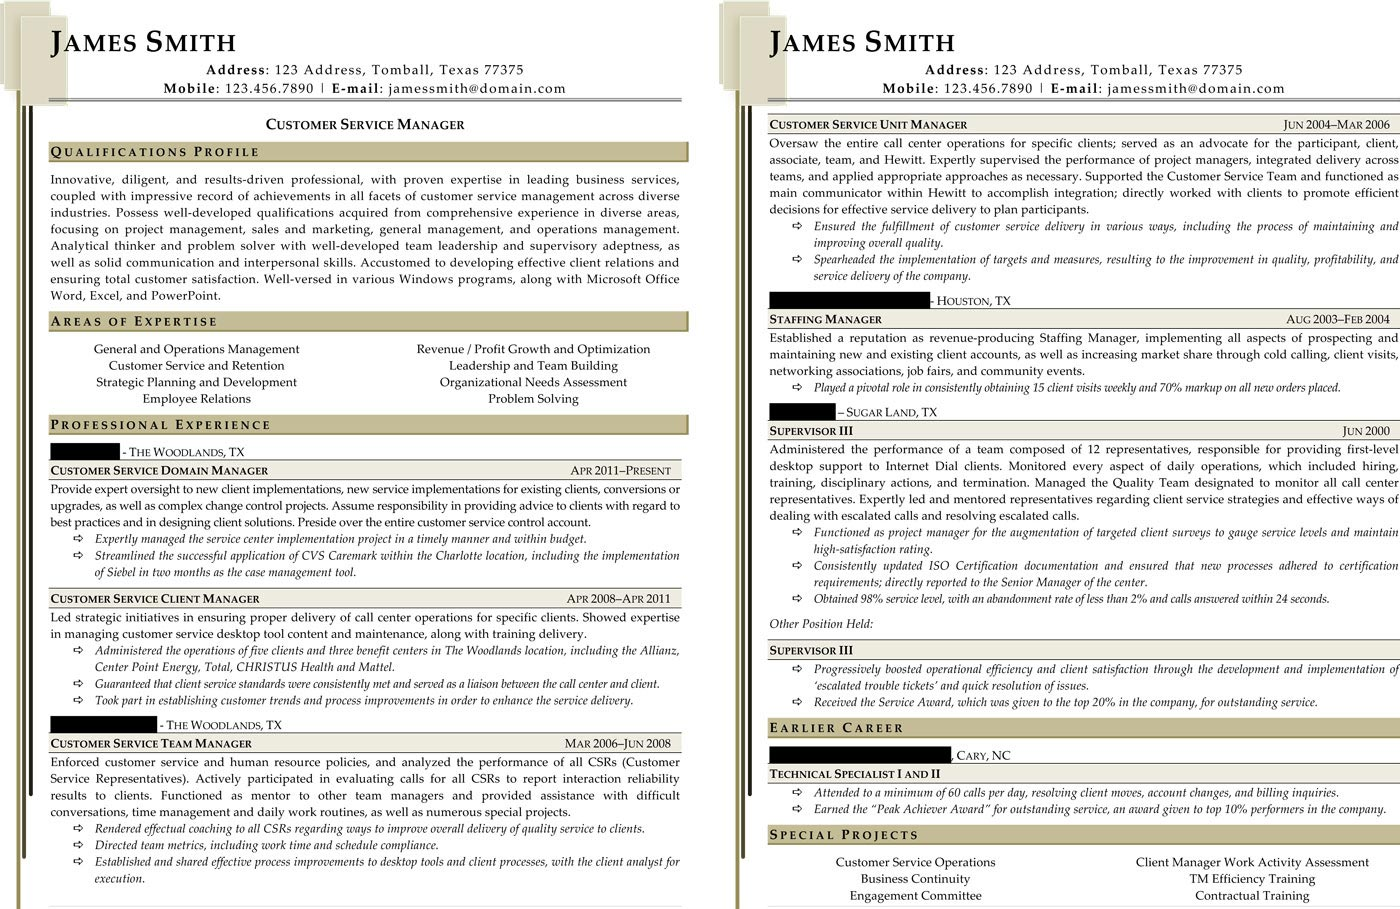 resume of a customer service manager senior customer service manager resume example cover letter examples for bank officer curriculum vitae cv customer